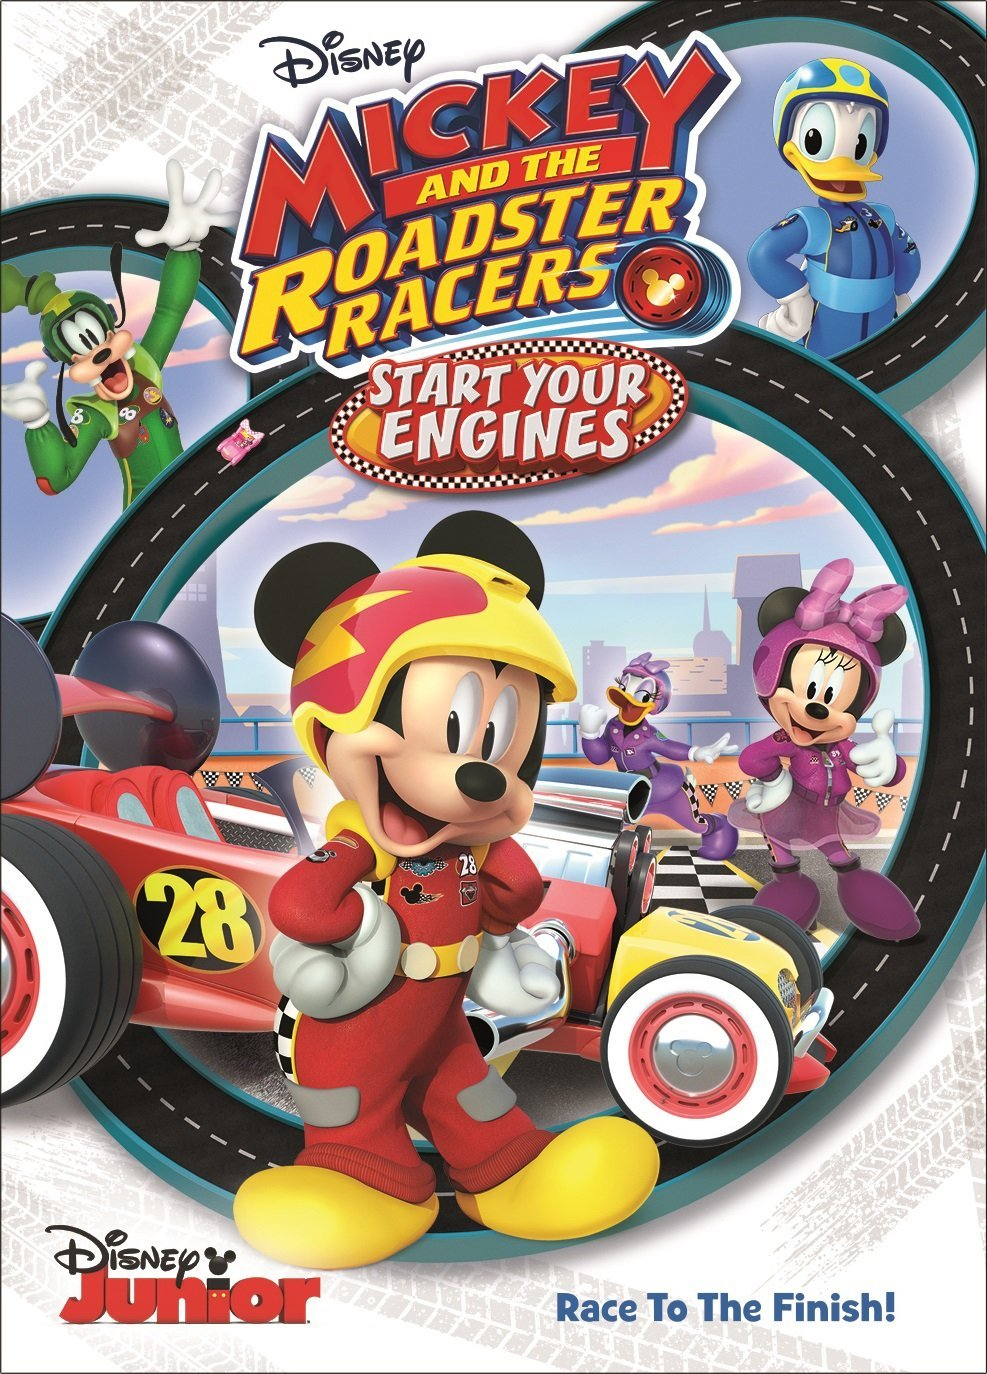 DVD Review - Mickey and the Roadster Racers: Start Your Engines